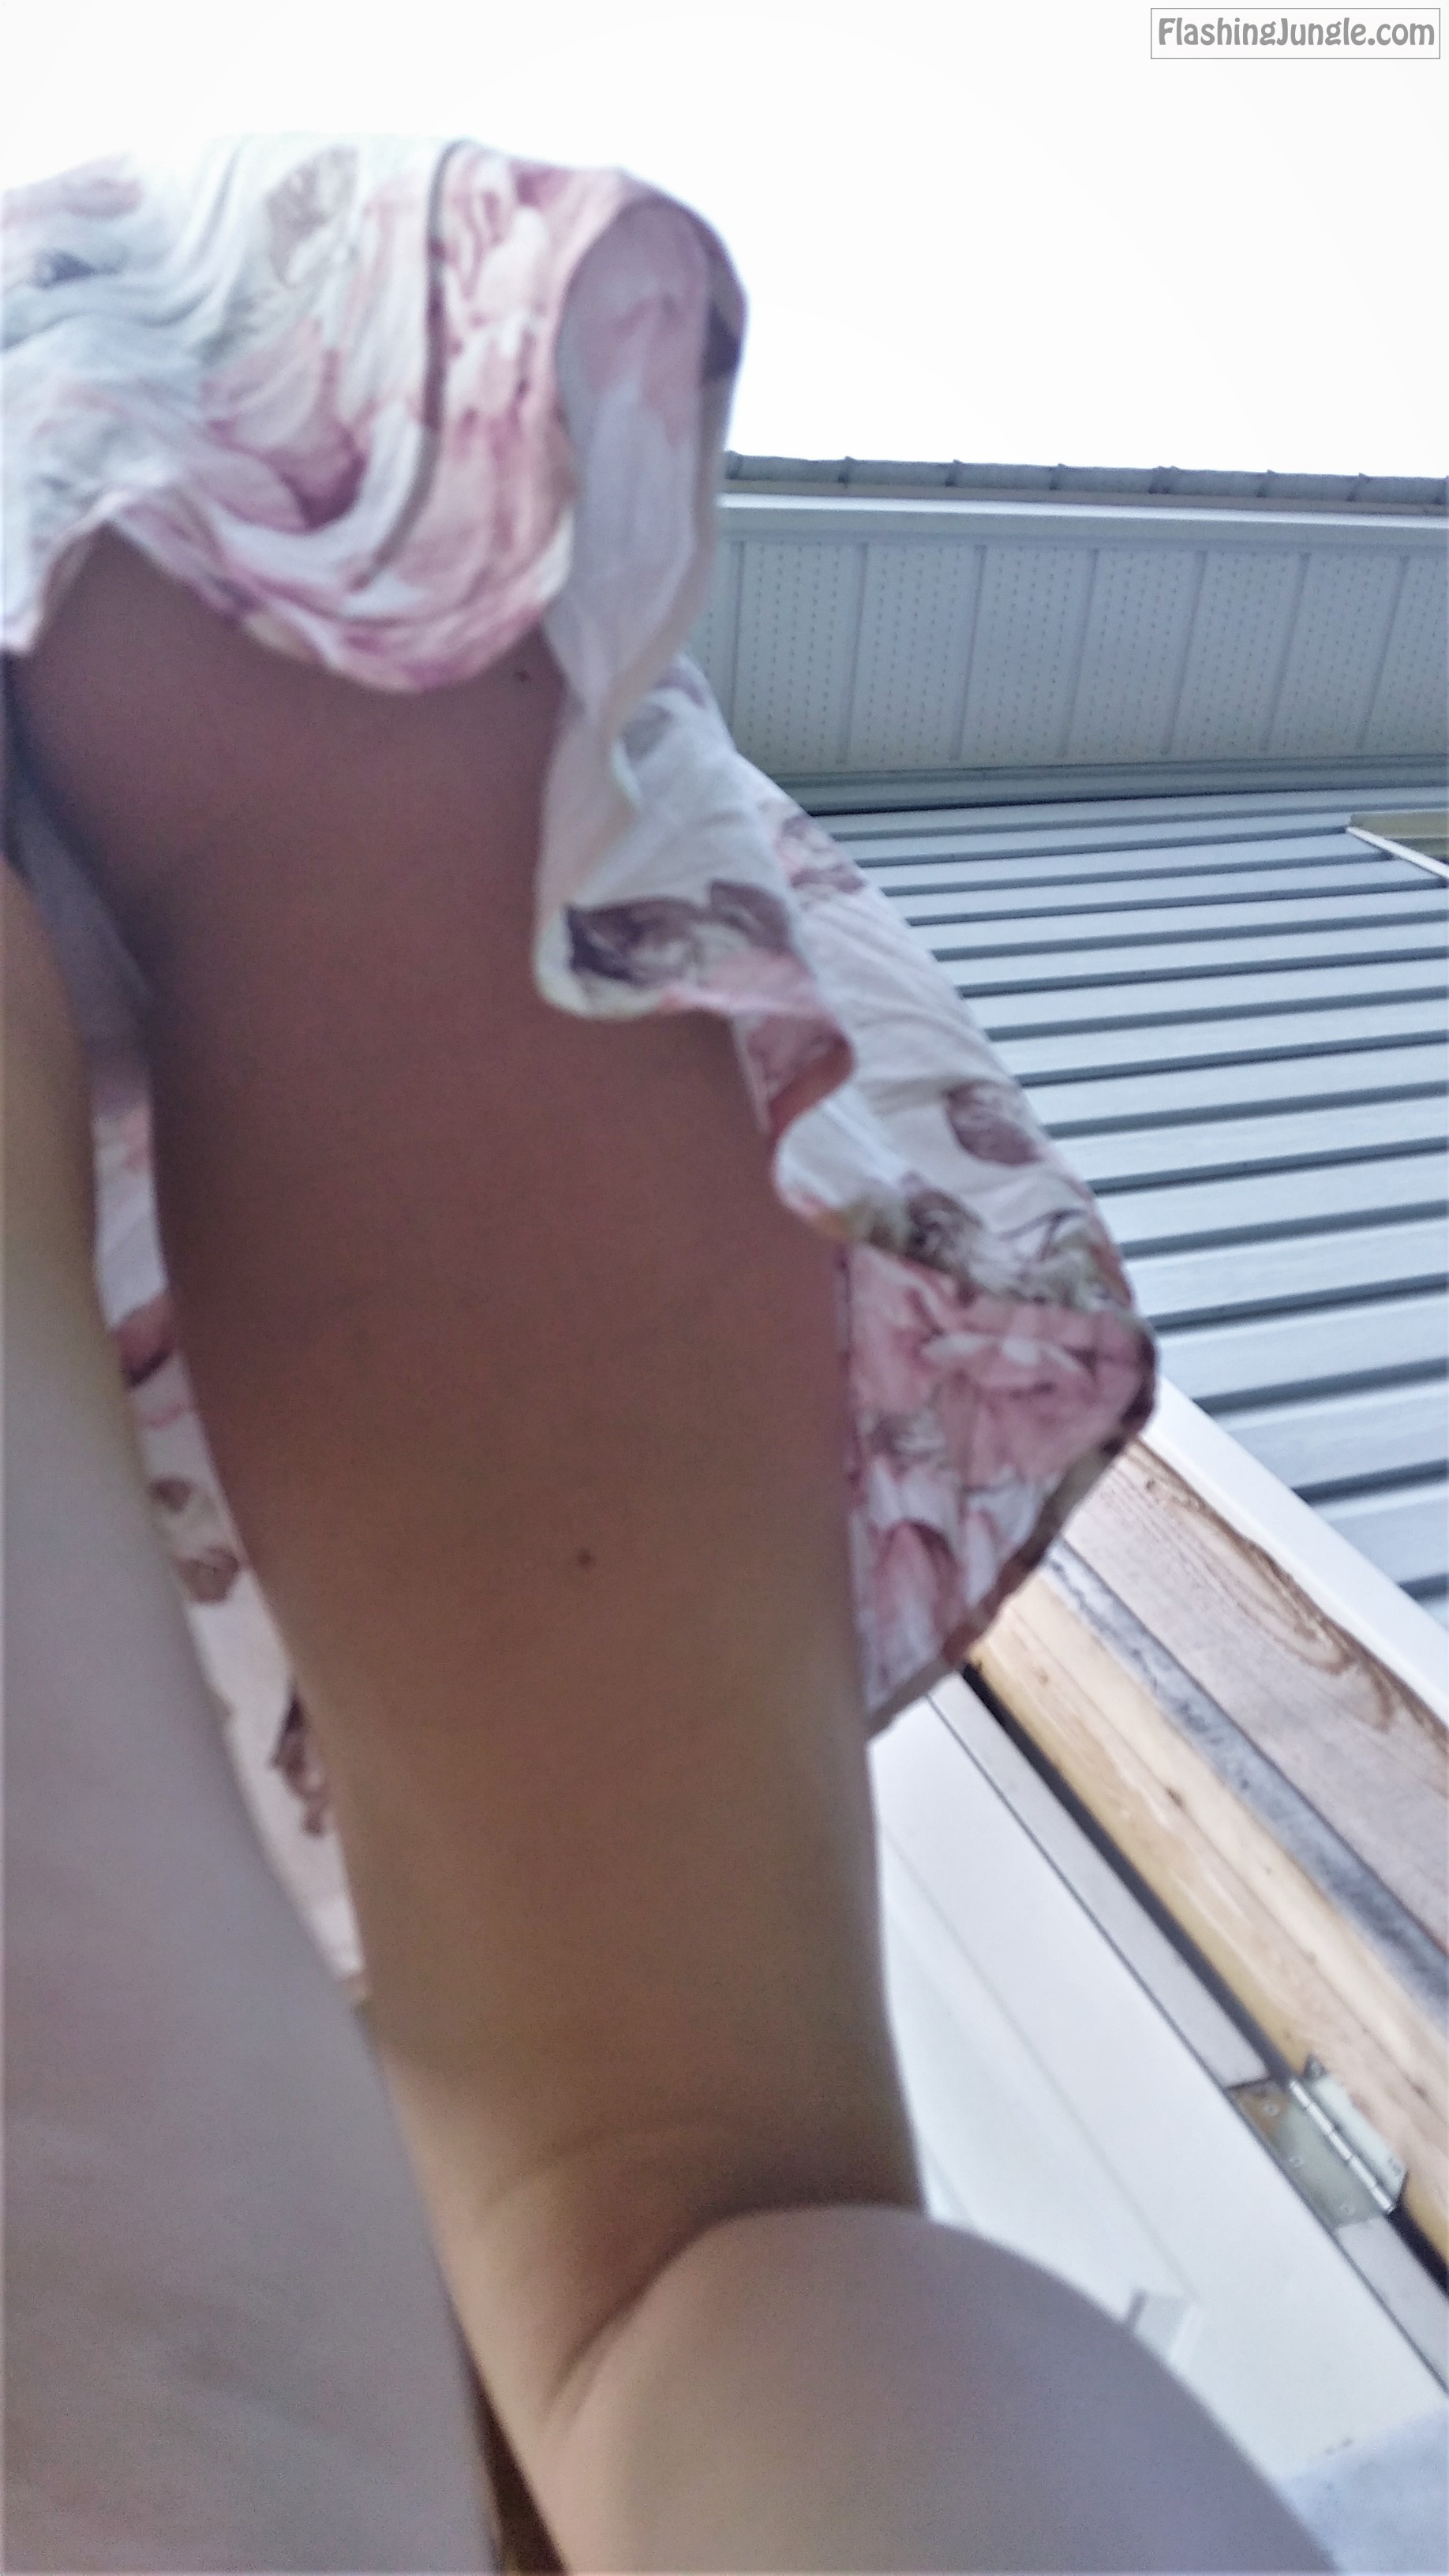 upskirt panty upskirt shot under summer dress